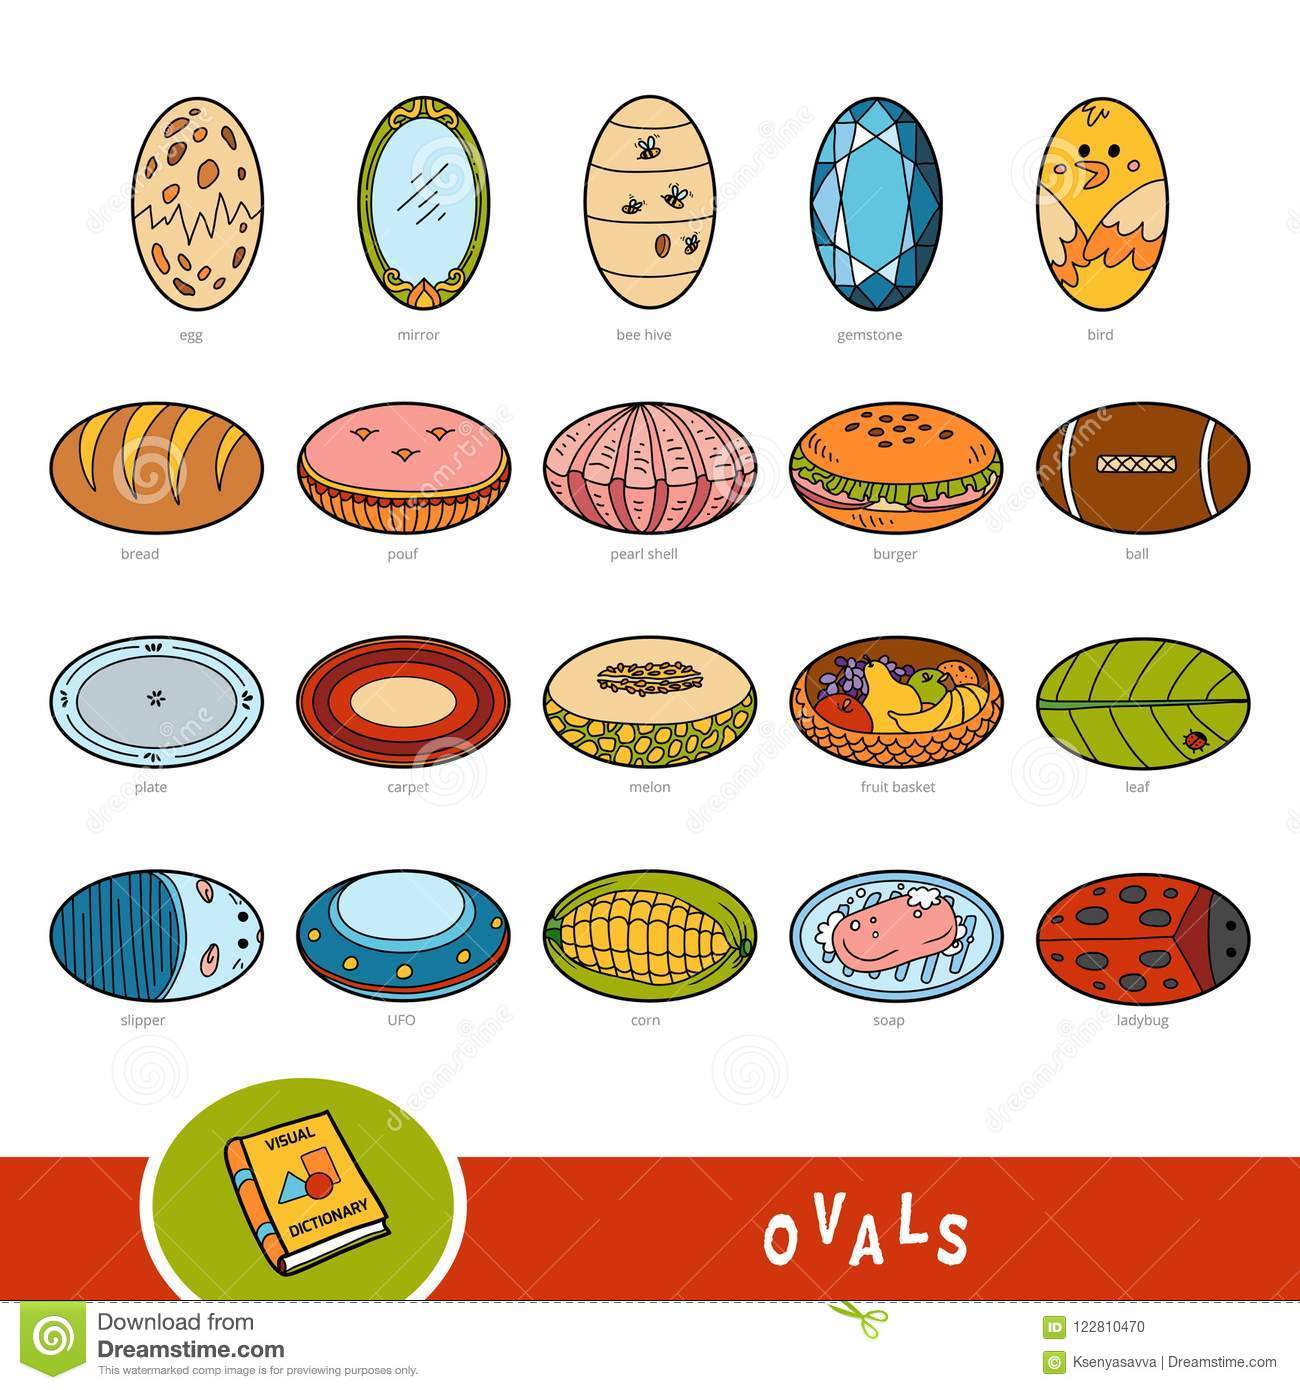 Colorful Set Of Oval Shape Objects Visual Dictionary Stock Vector Illustration Of Book Carpet 122810470